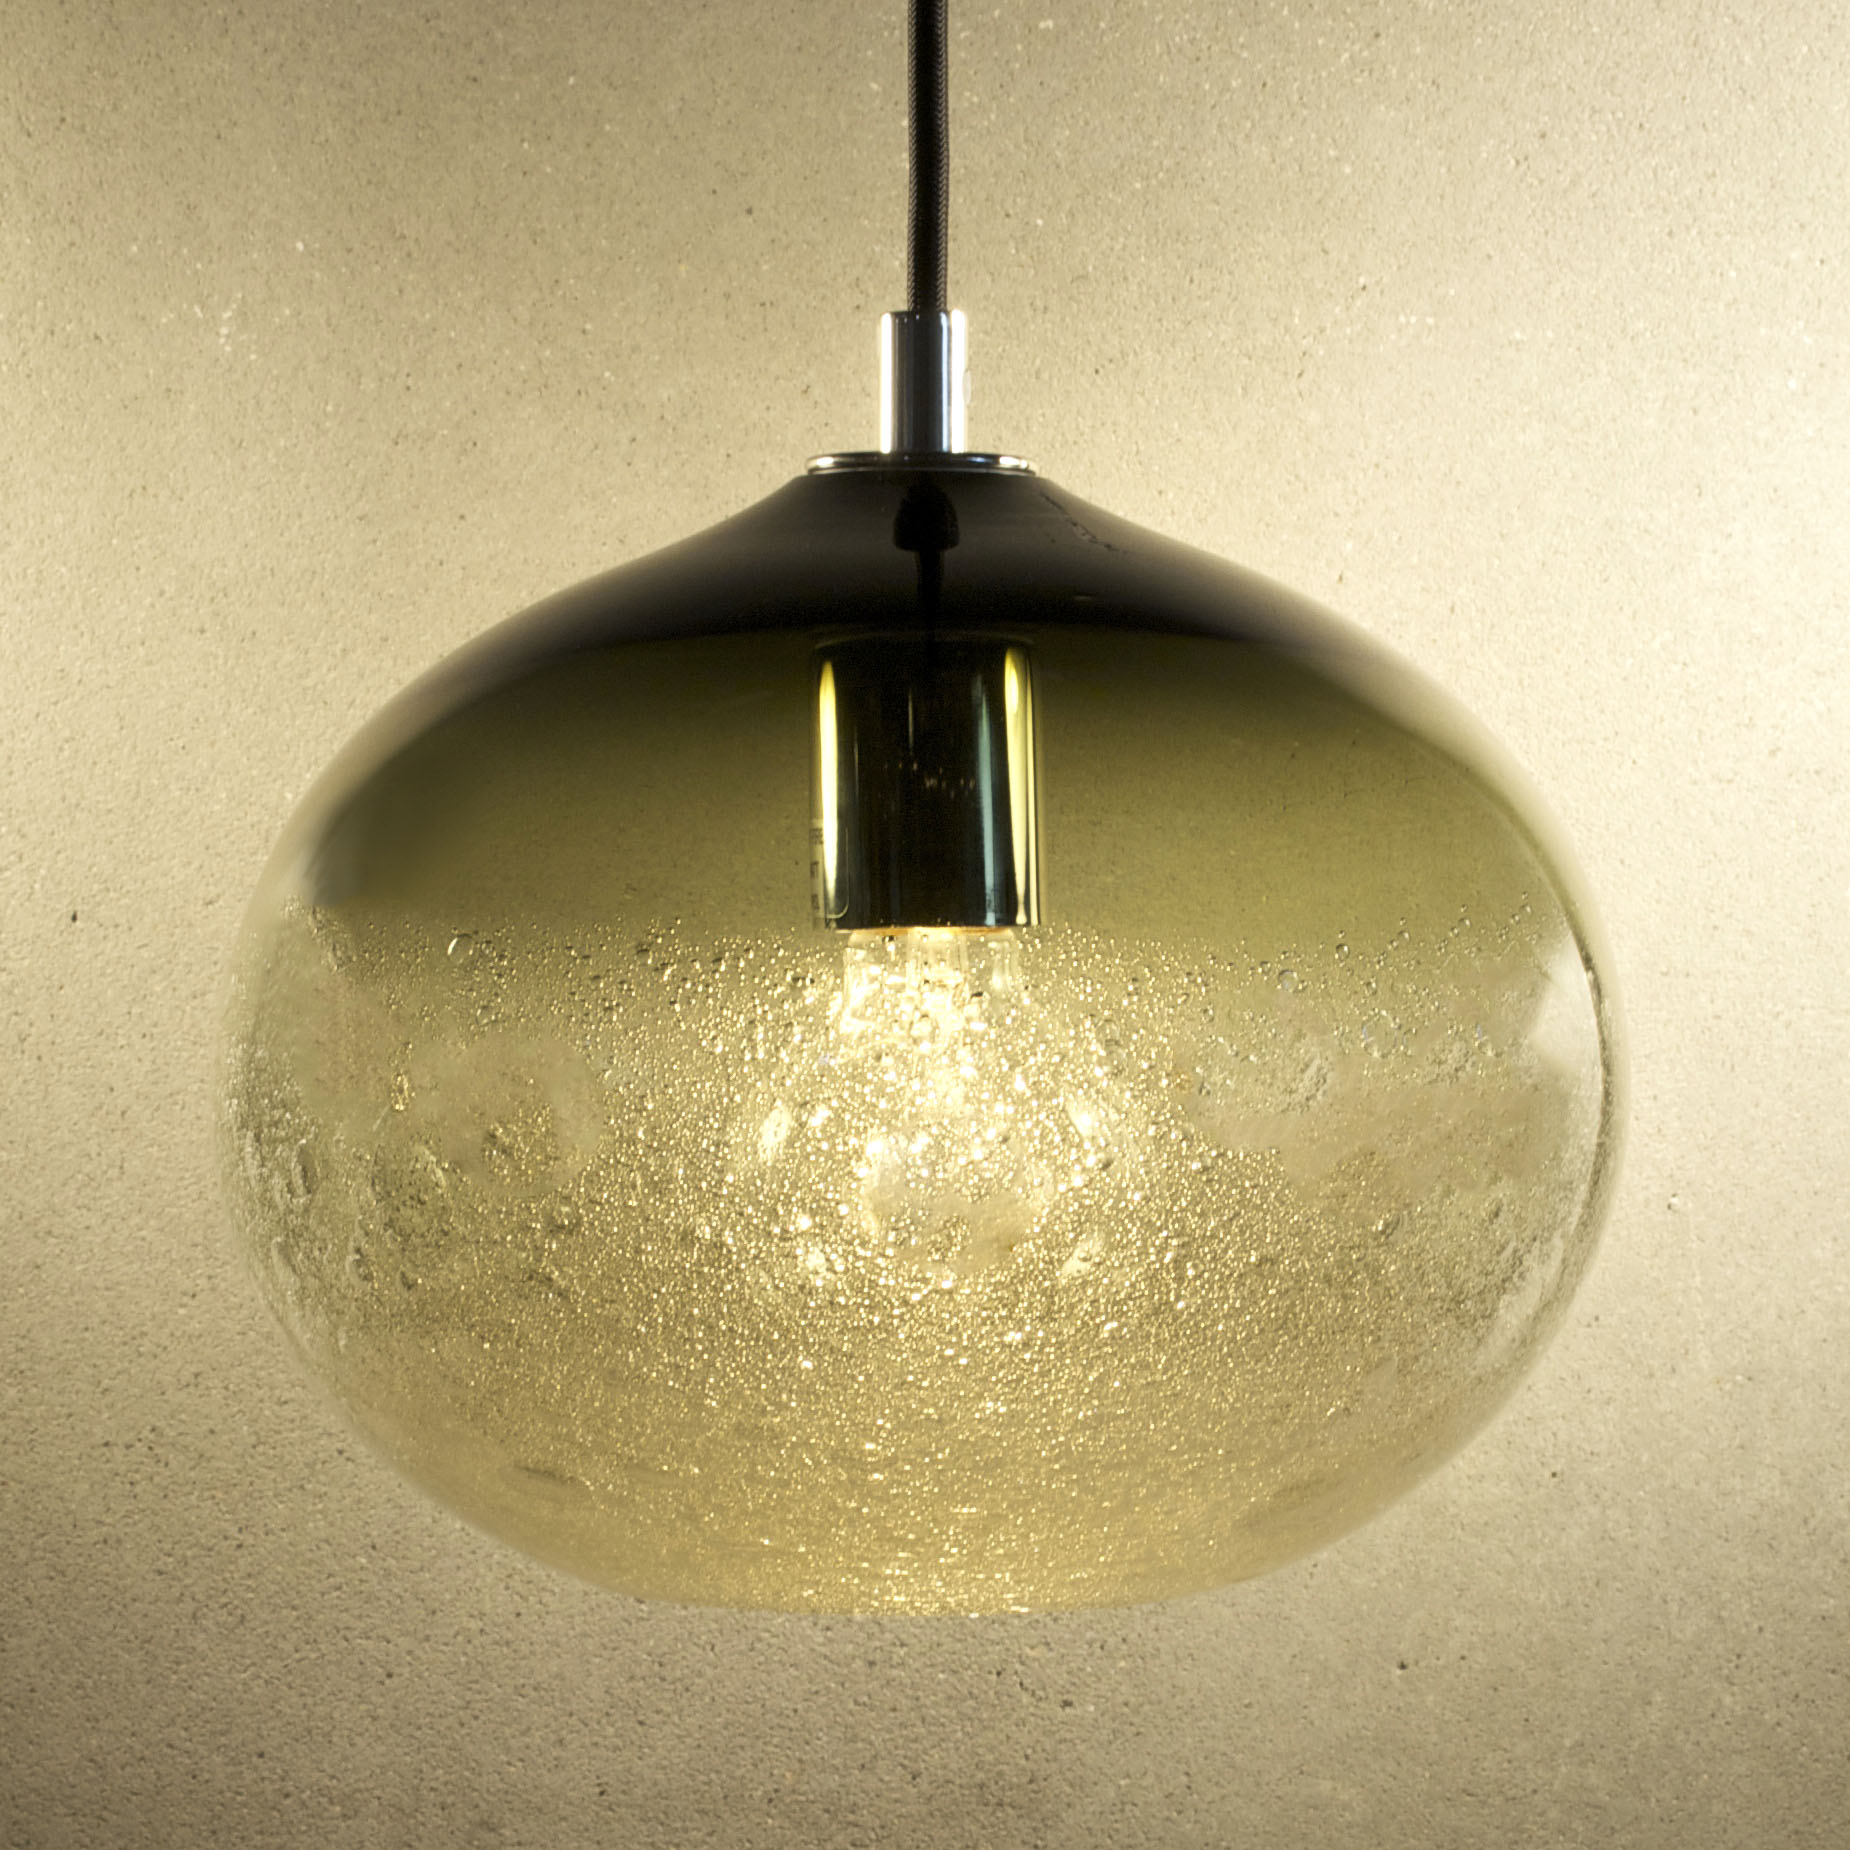 Hand Blown Glass Lighting. bronze ellipse bubble pendant by siemon and salazar